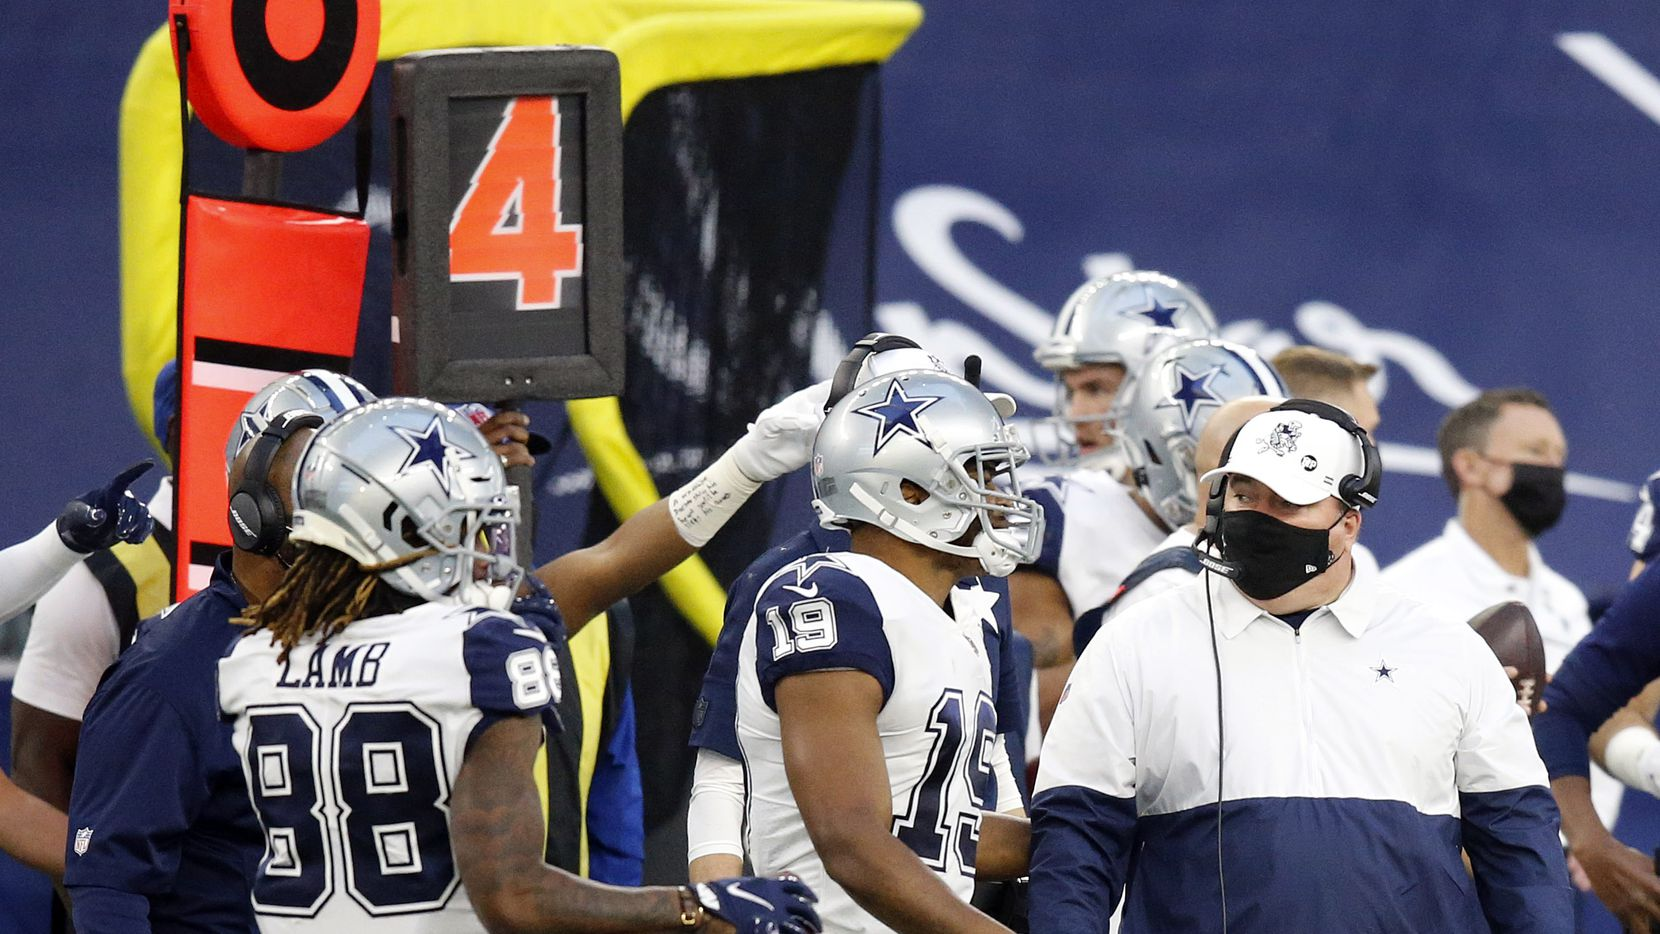 Dallas Cowboys head coach Mike McCarthy (right) is pictured on the sideline after Dallas Cowboys wide receiver CeeDee Lamb (88) failed to pick up the first on fourth down against the Washington Football Team at AT&T Stadium in Arlington, Thursday, November 26, 2020.